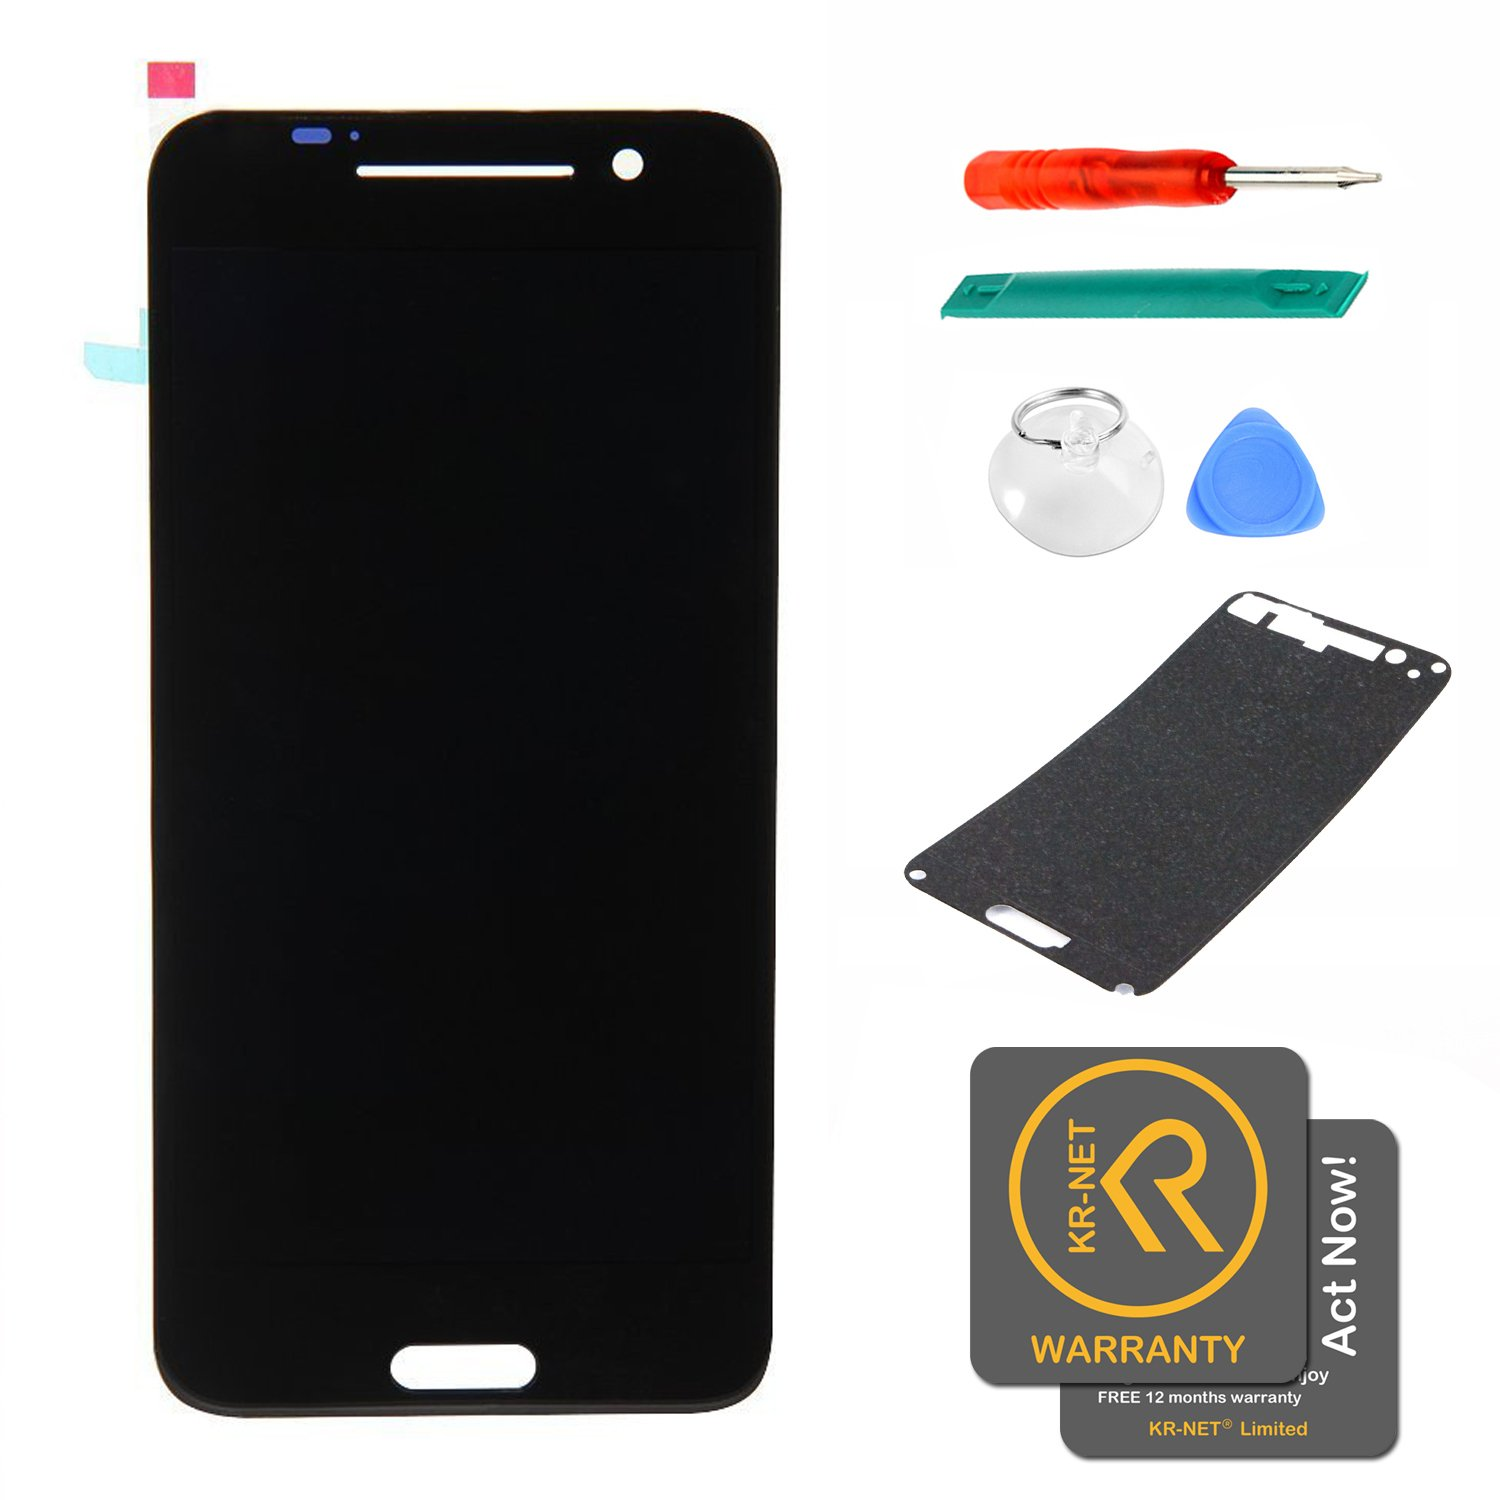 KR-NET Black Display LCD Touch Screen Digitizer Assembly+Pre-Cut LCD sticker for HTC One A9 Hima Aero